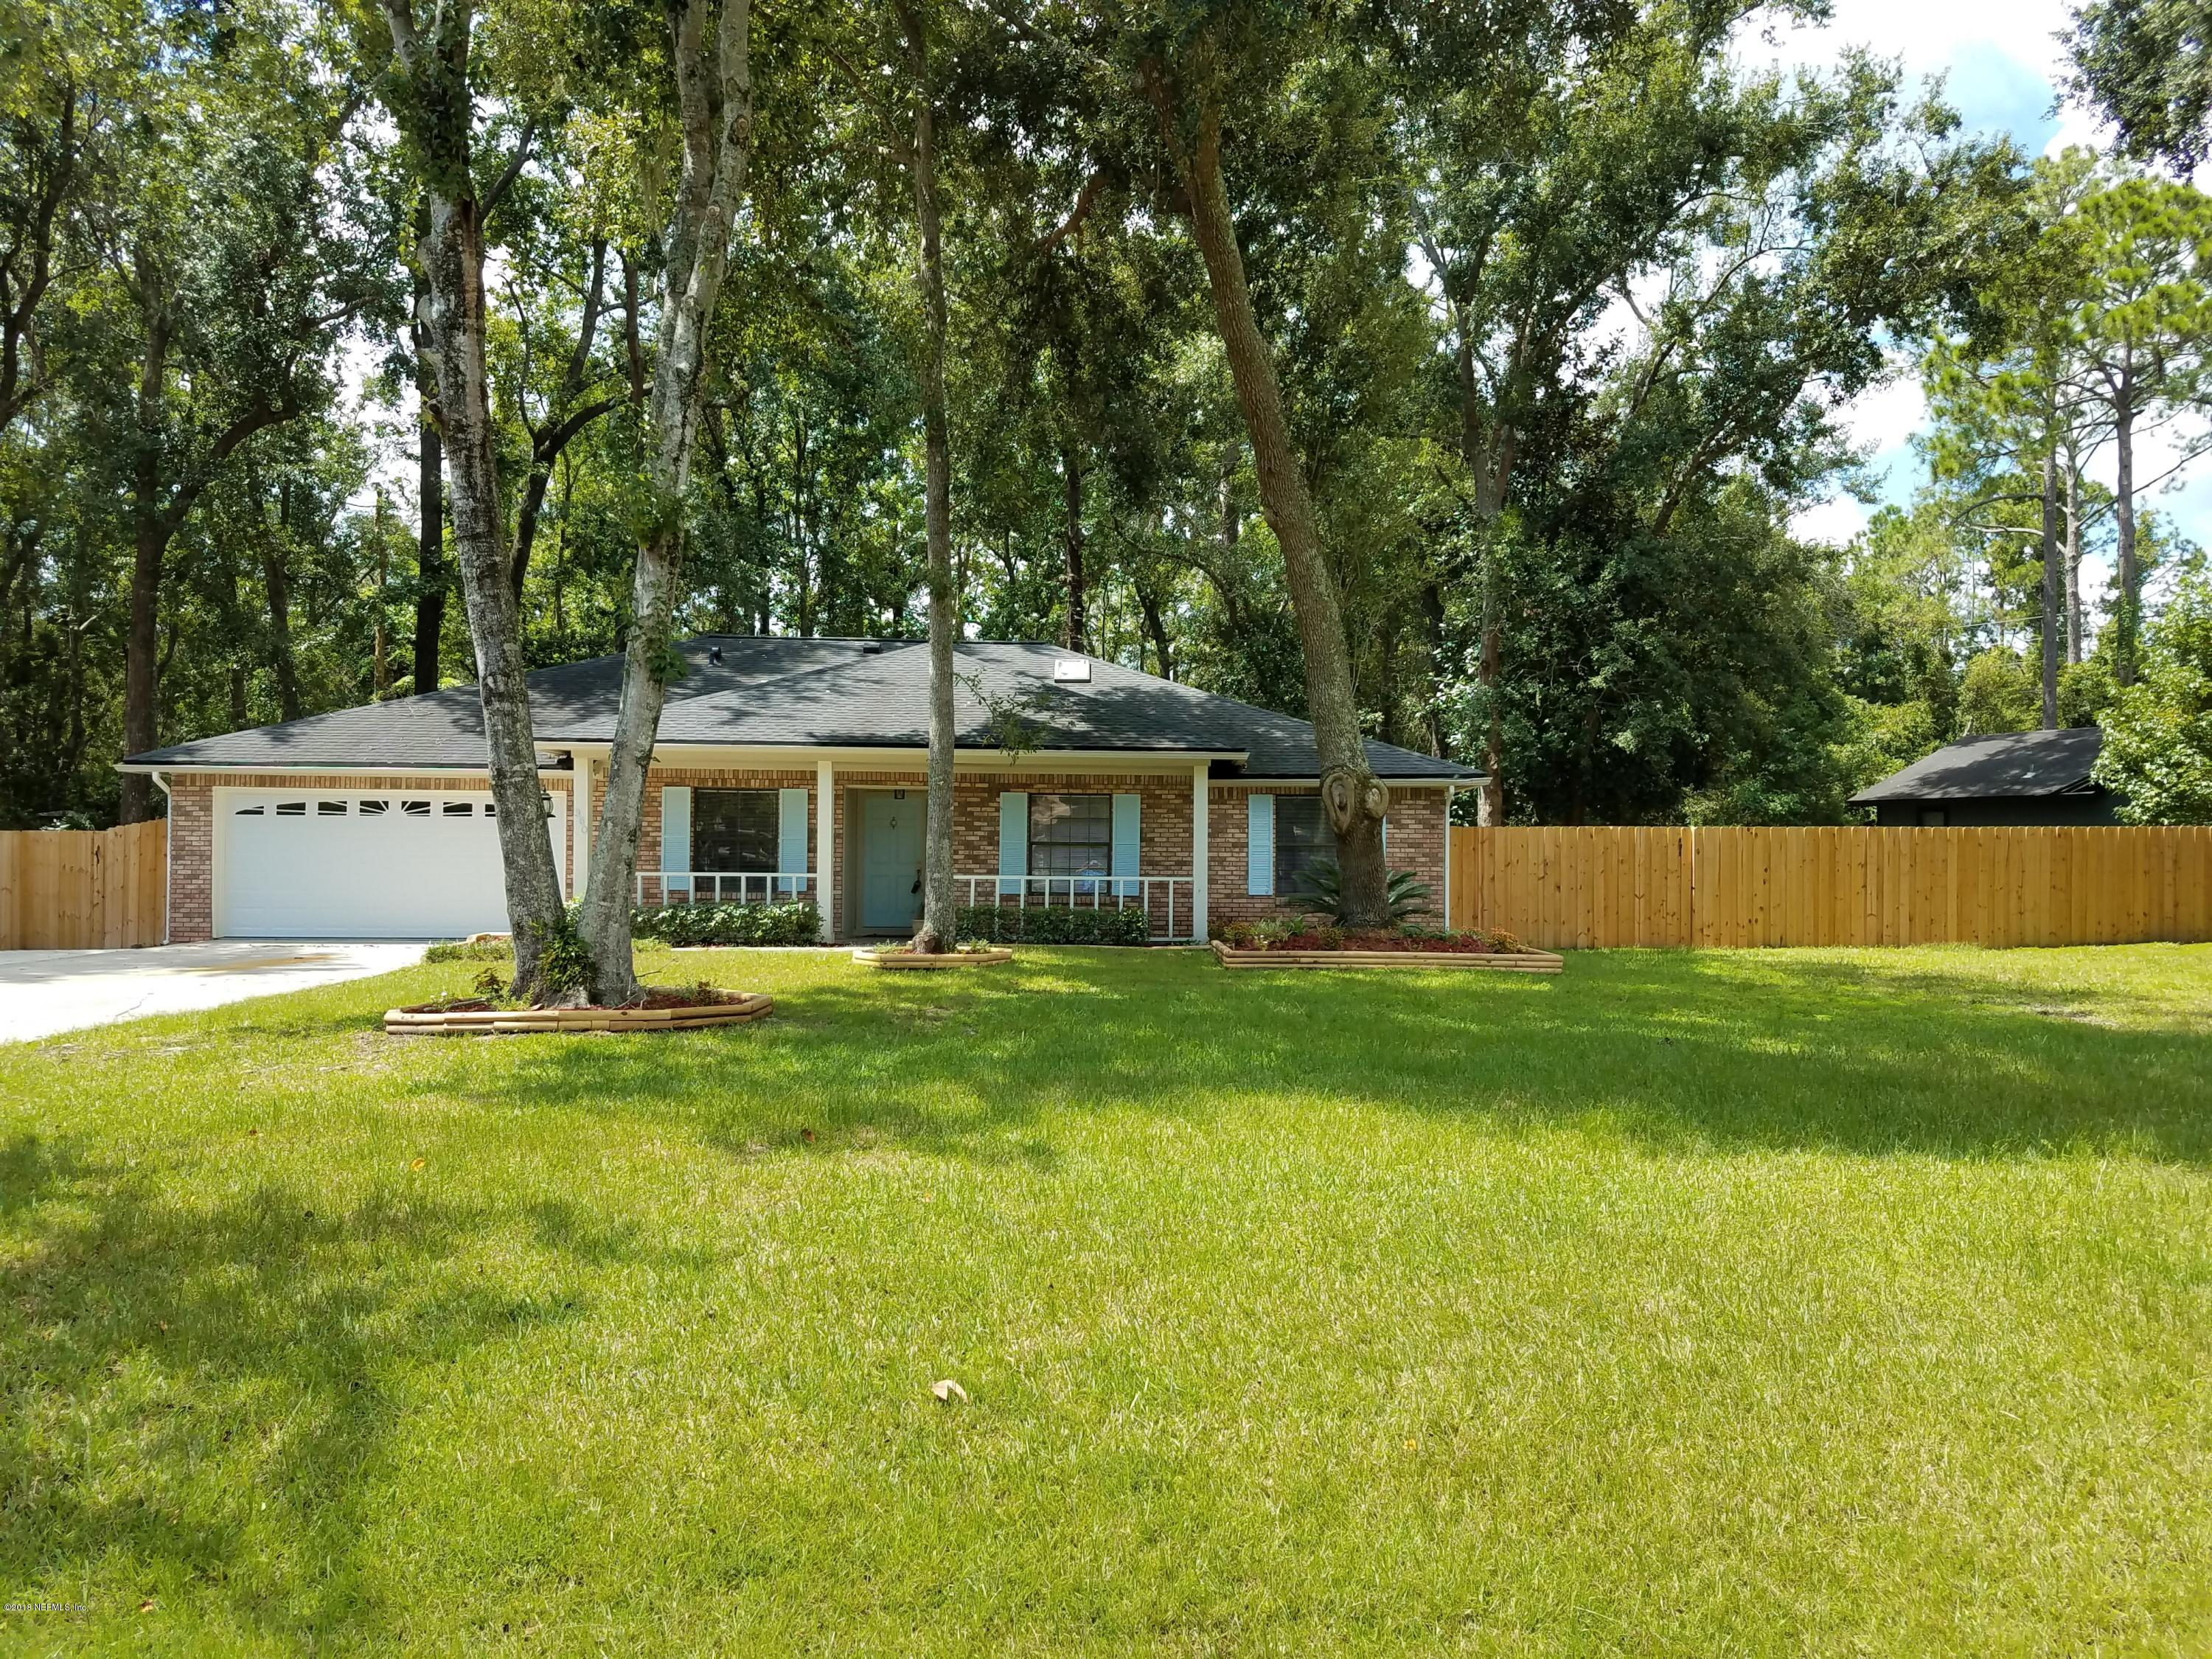 360 RIVER REACH, FLEMING ISLAND, FLORIDA 32003, 3 Bedrooms Bedrooms, ,2 BathroomsBathrooms,Residential - single family,For sale,RIVER REACH,953195